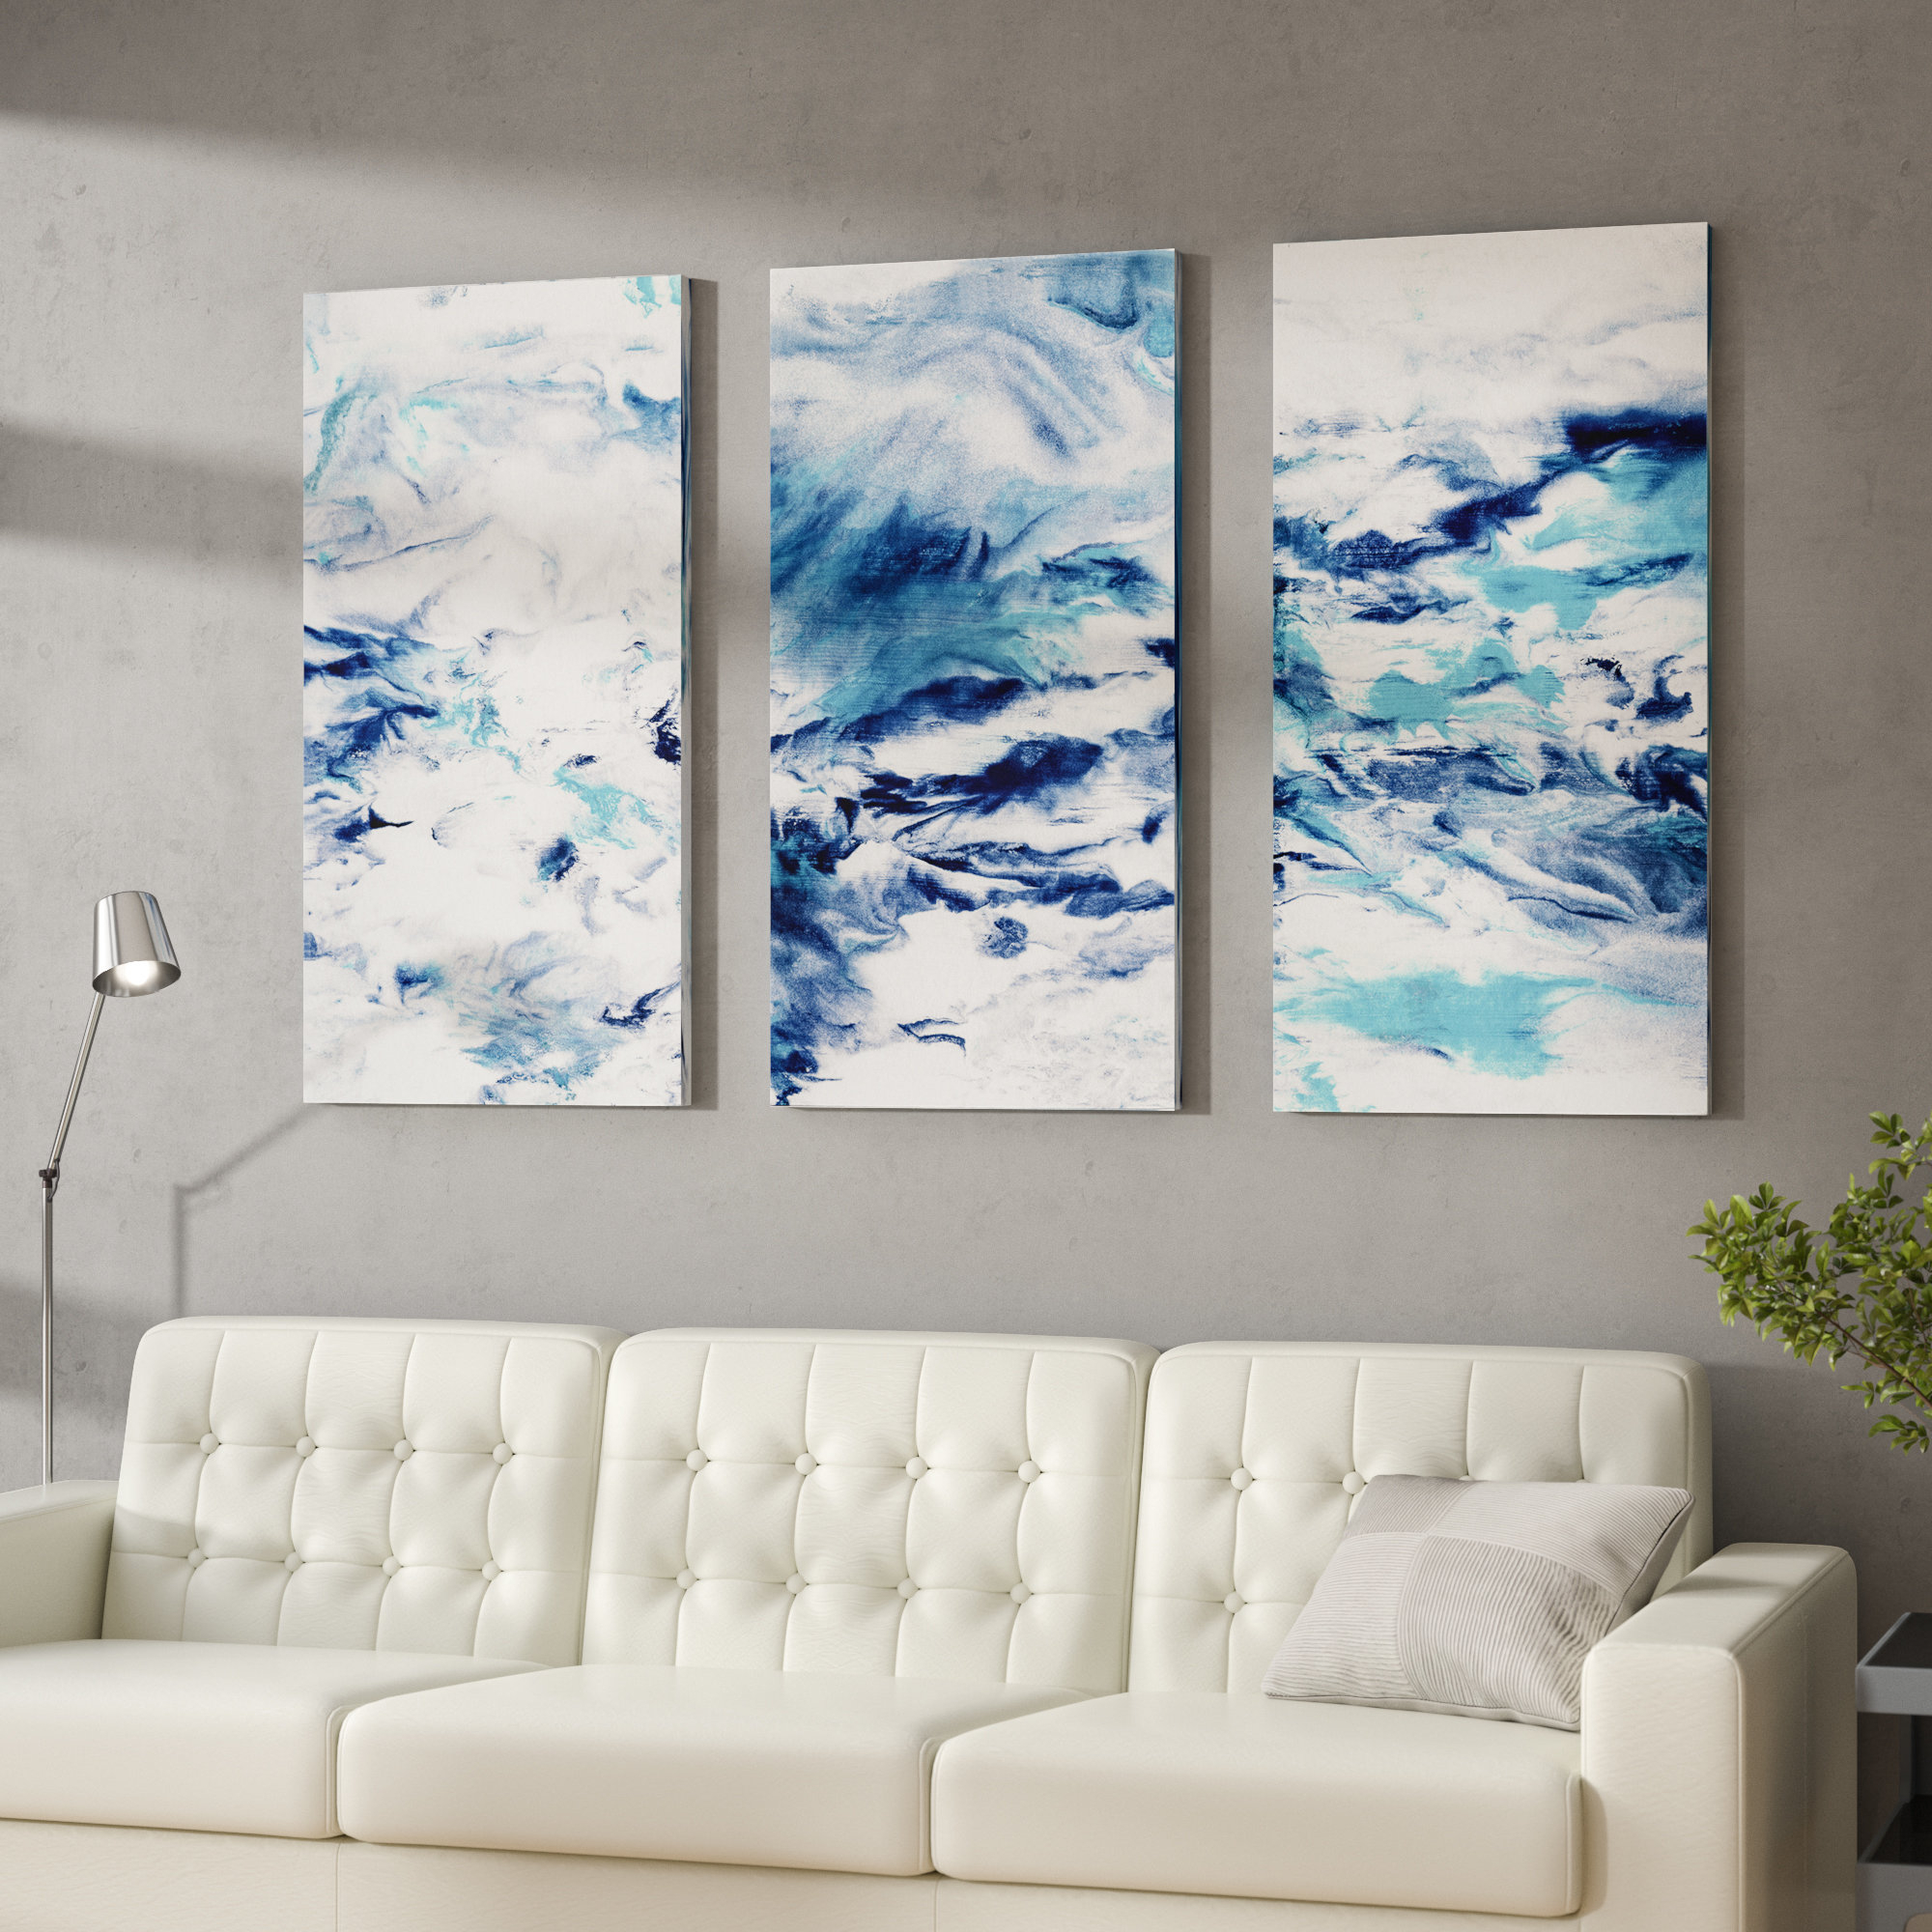 3 Piece Wall Art You'll Love In 2019 | Wayfair for 3 Piece Wall Decor Sets by Wrought Studio (Image 14 of 30)